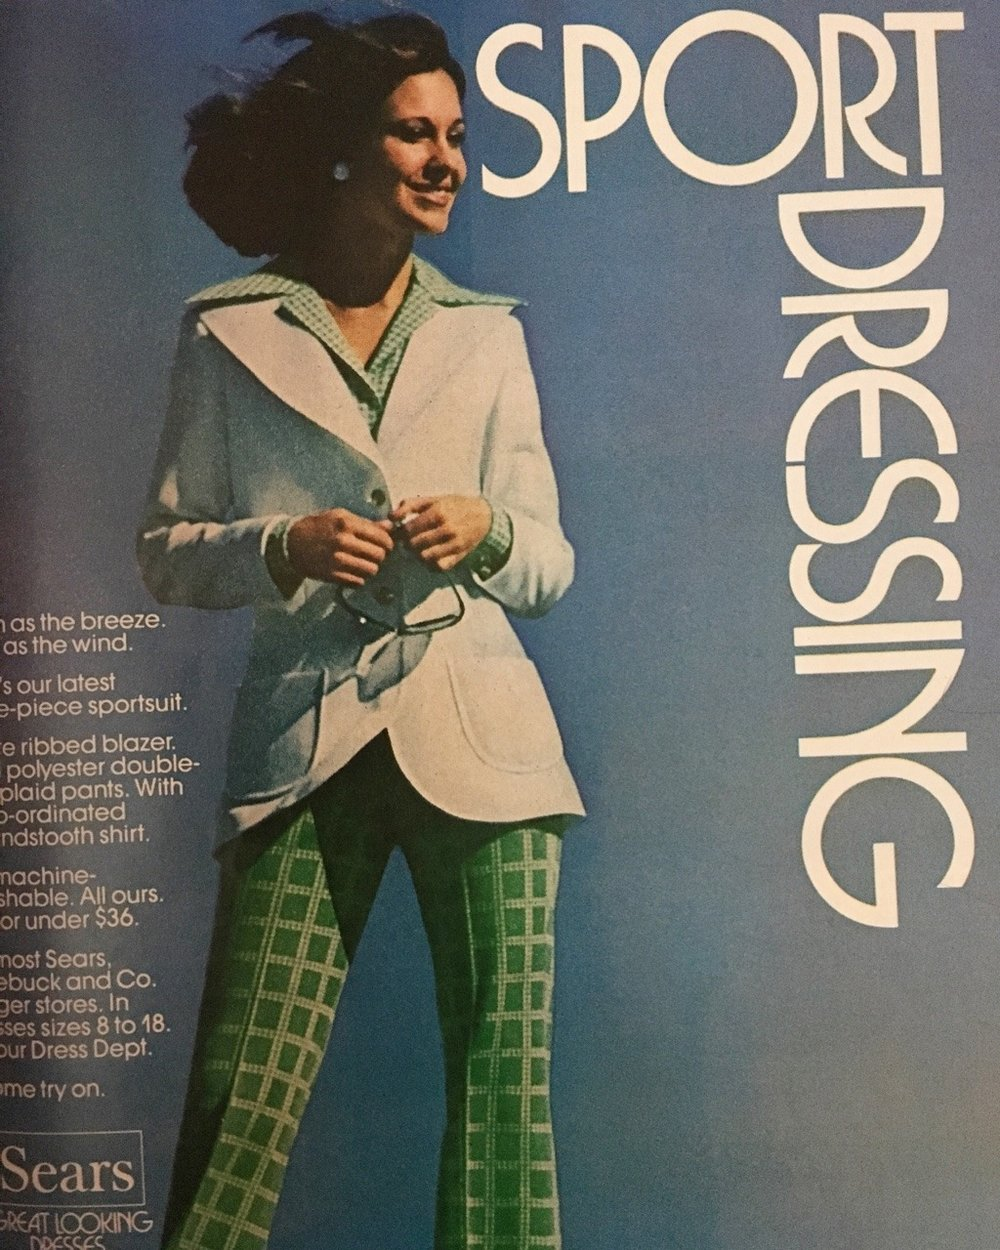 Sport Dressing.   Sears. May 1974.